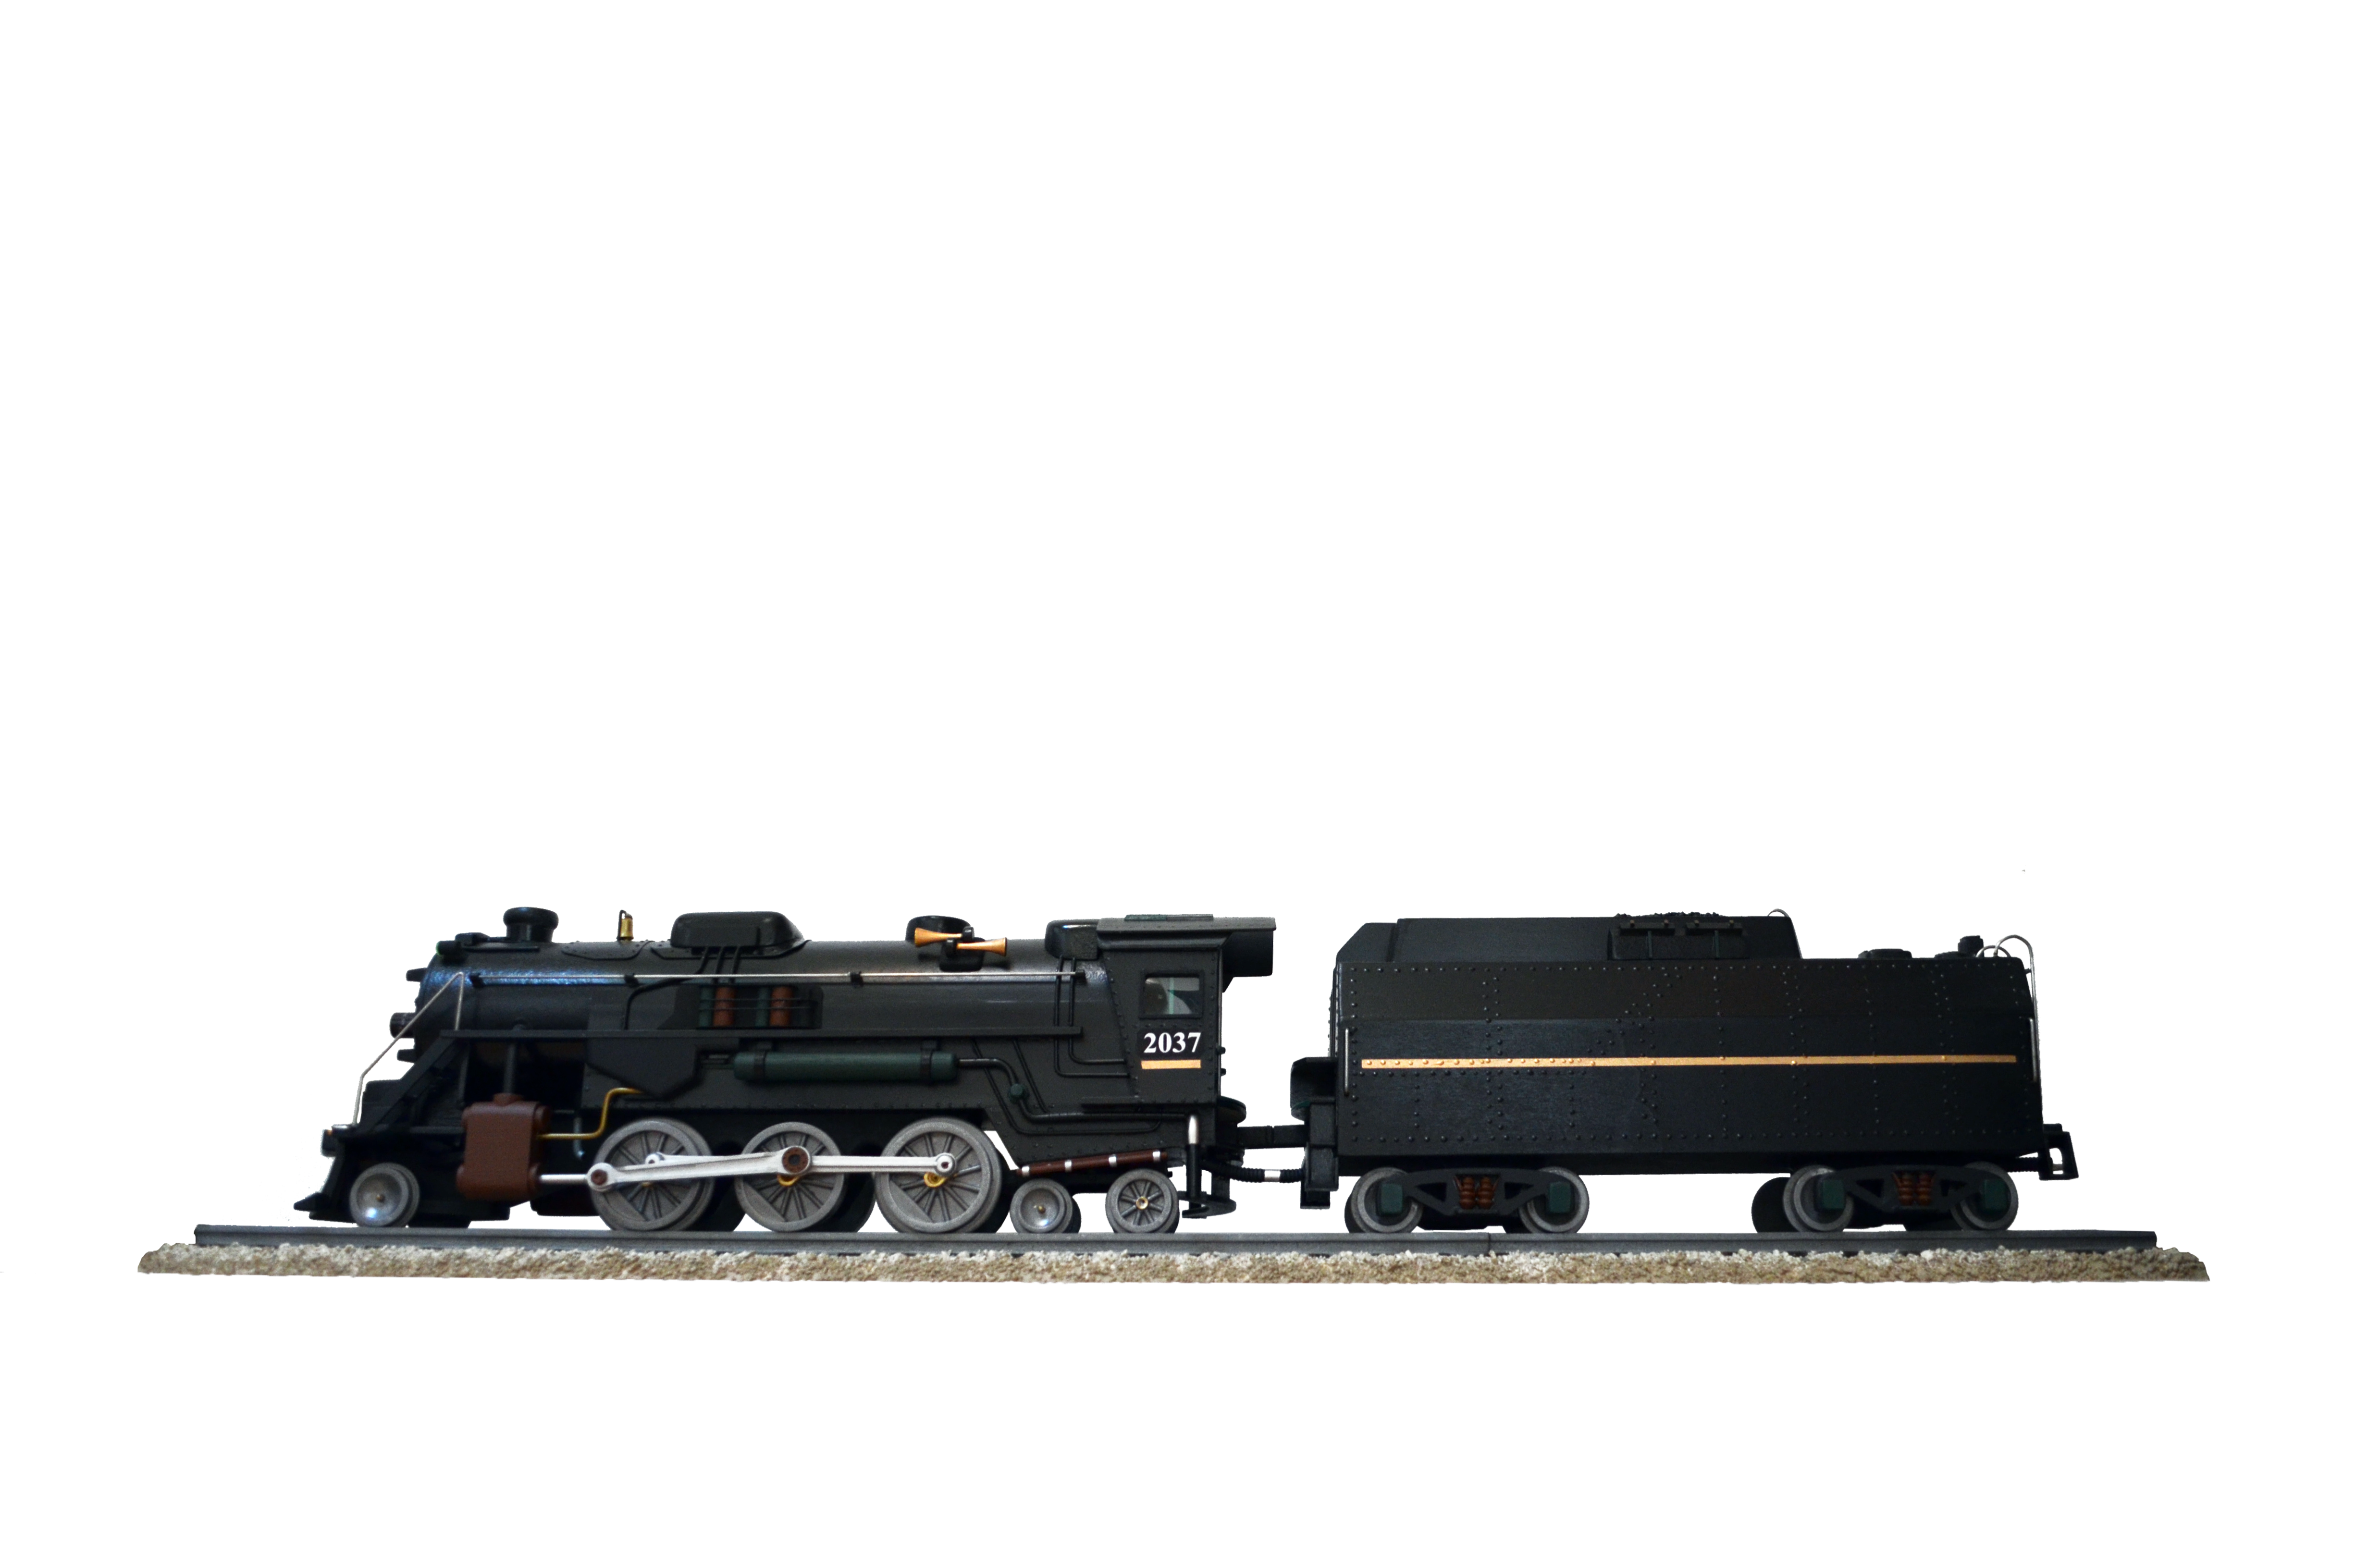 Transparent train side. View clipart freeuse